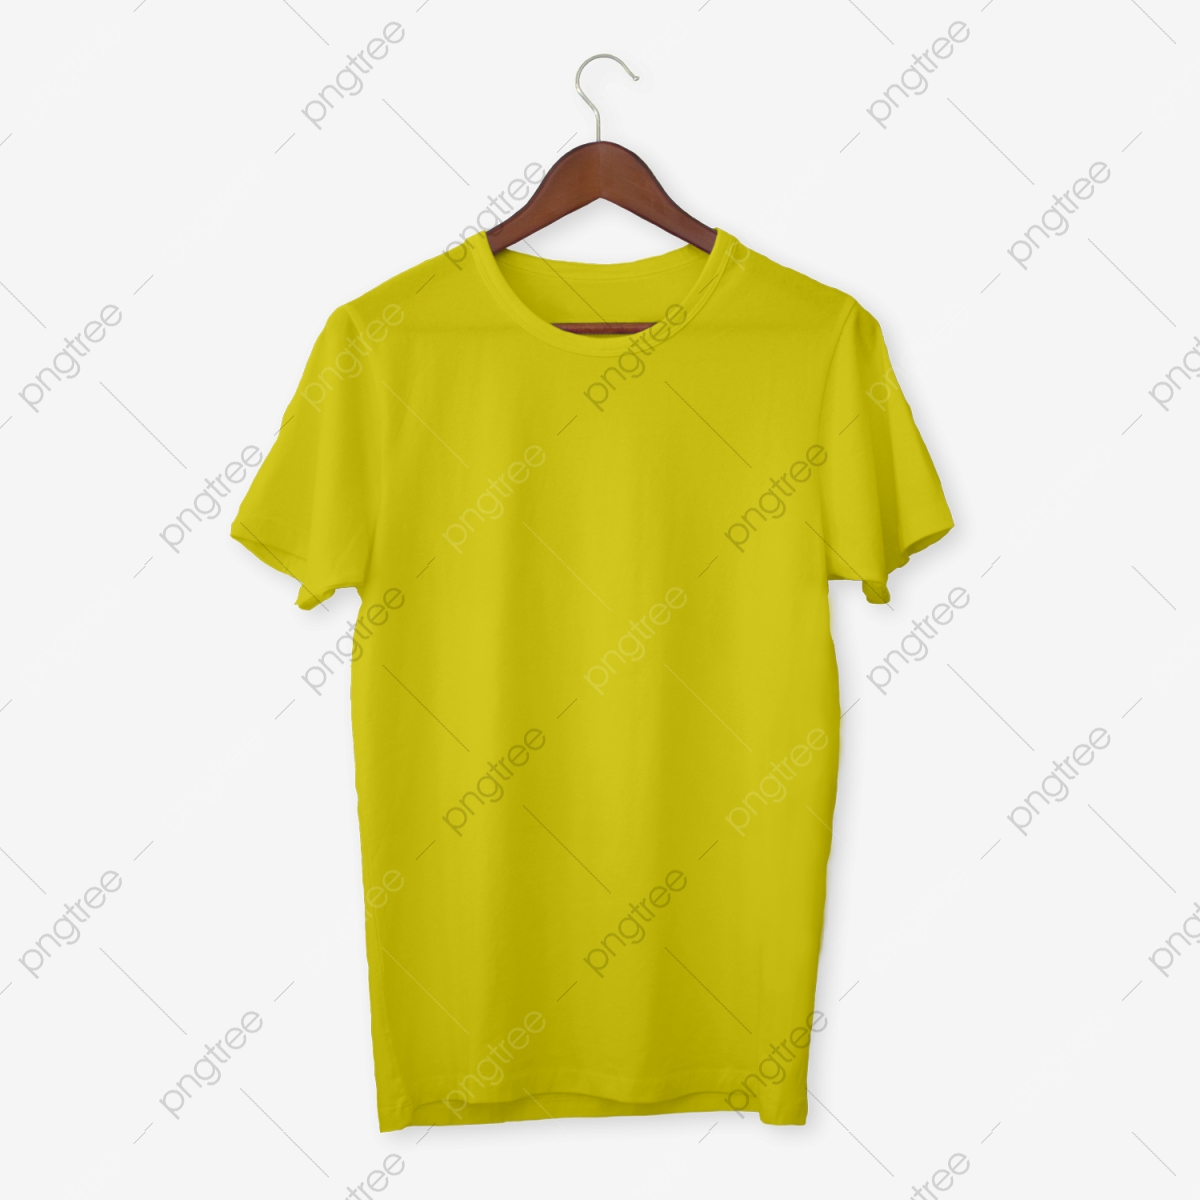 Download Yellow T Shirt Mockup T Shirts Mens White Png Transparent Clipart Image And Psd File For Free Download PSD Mockup Templates